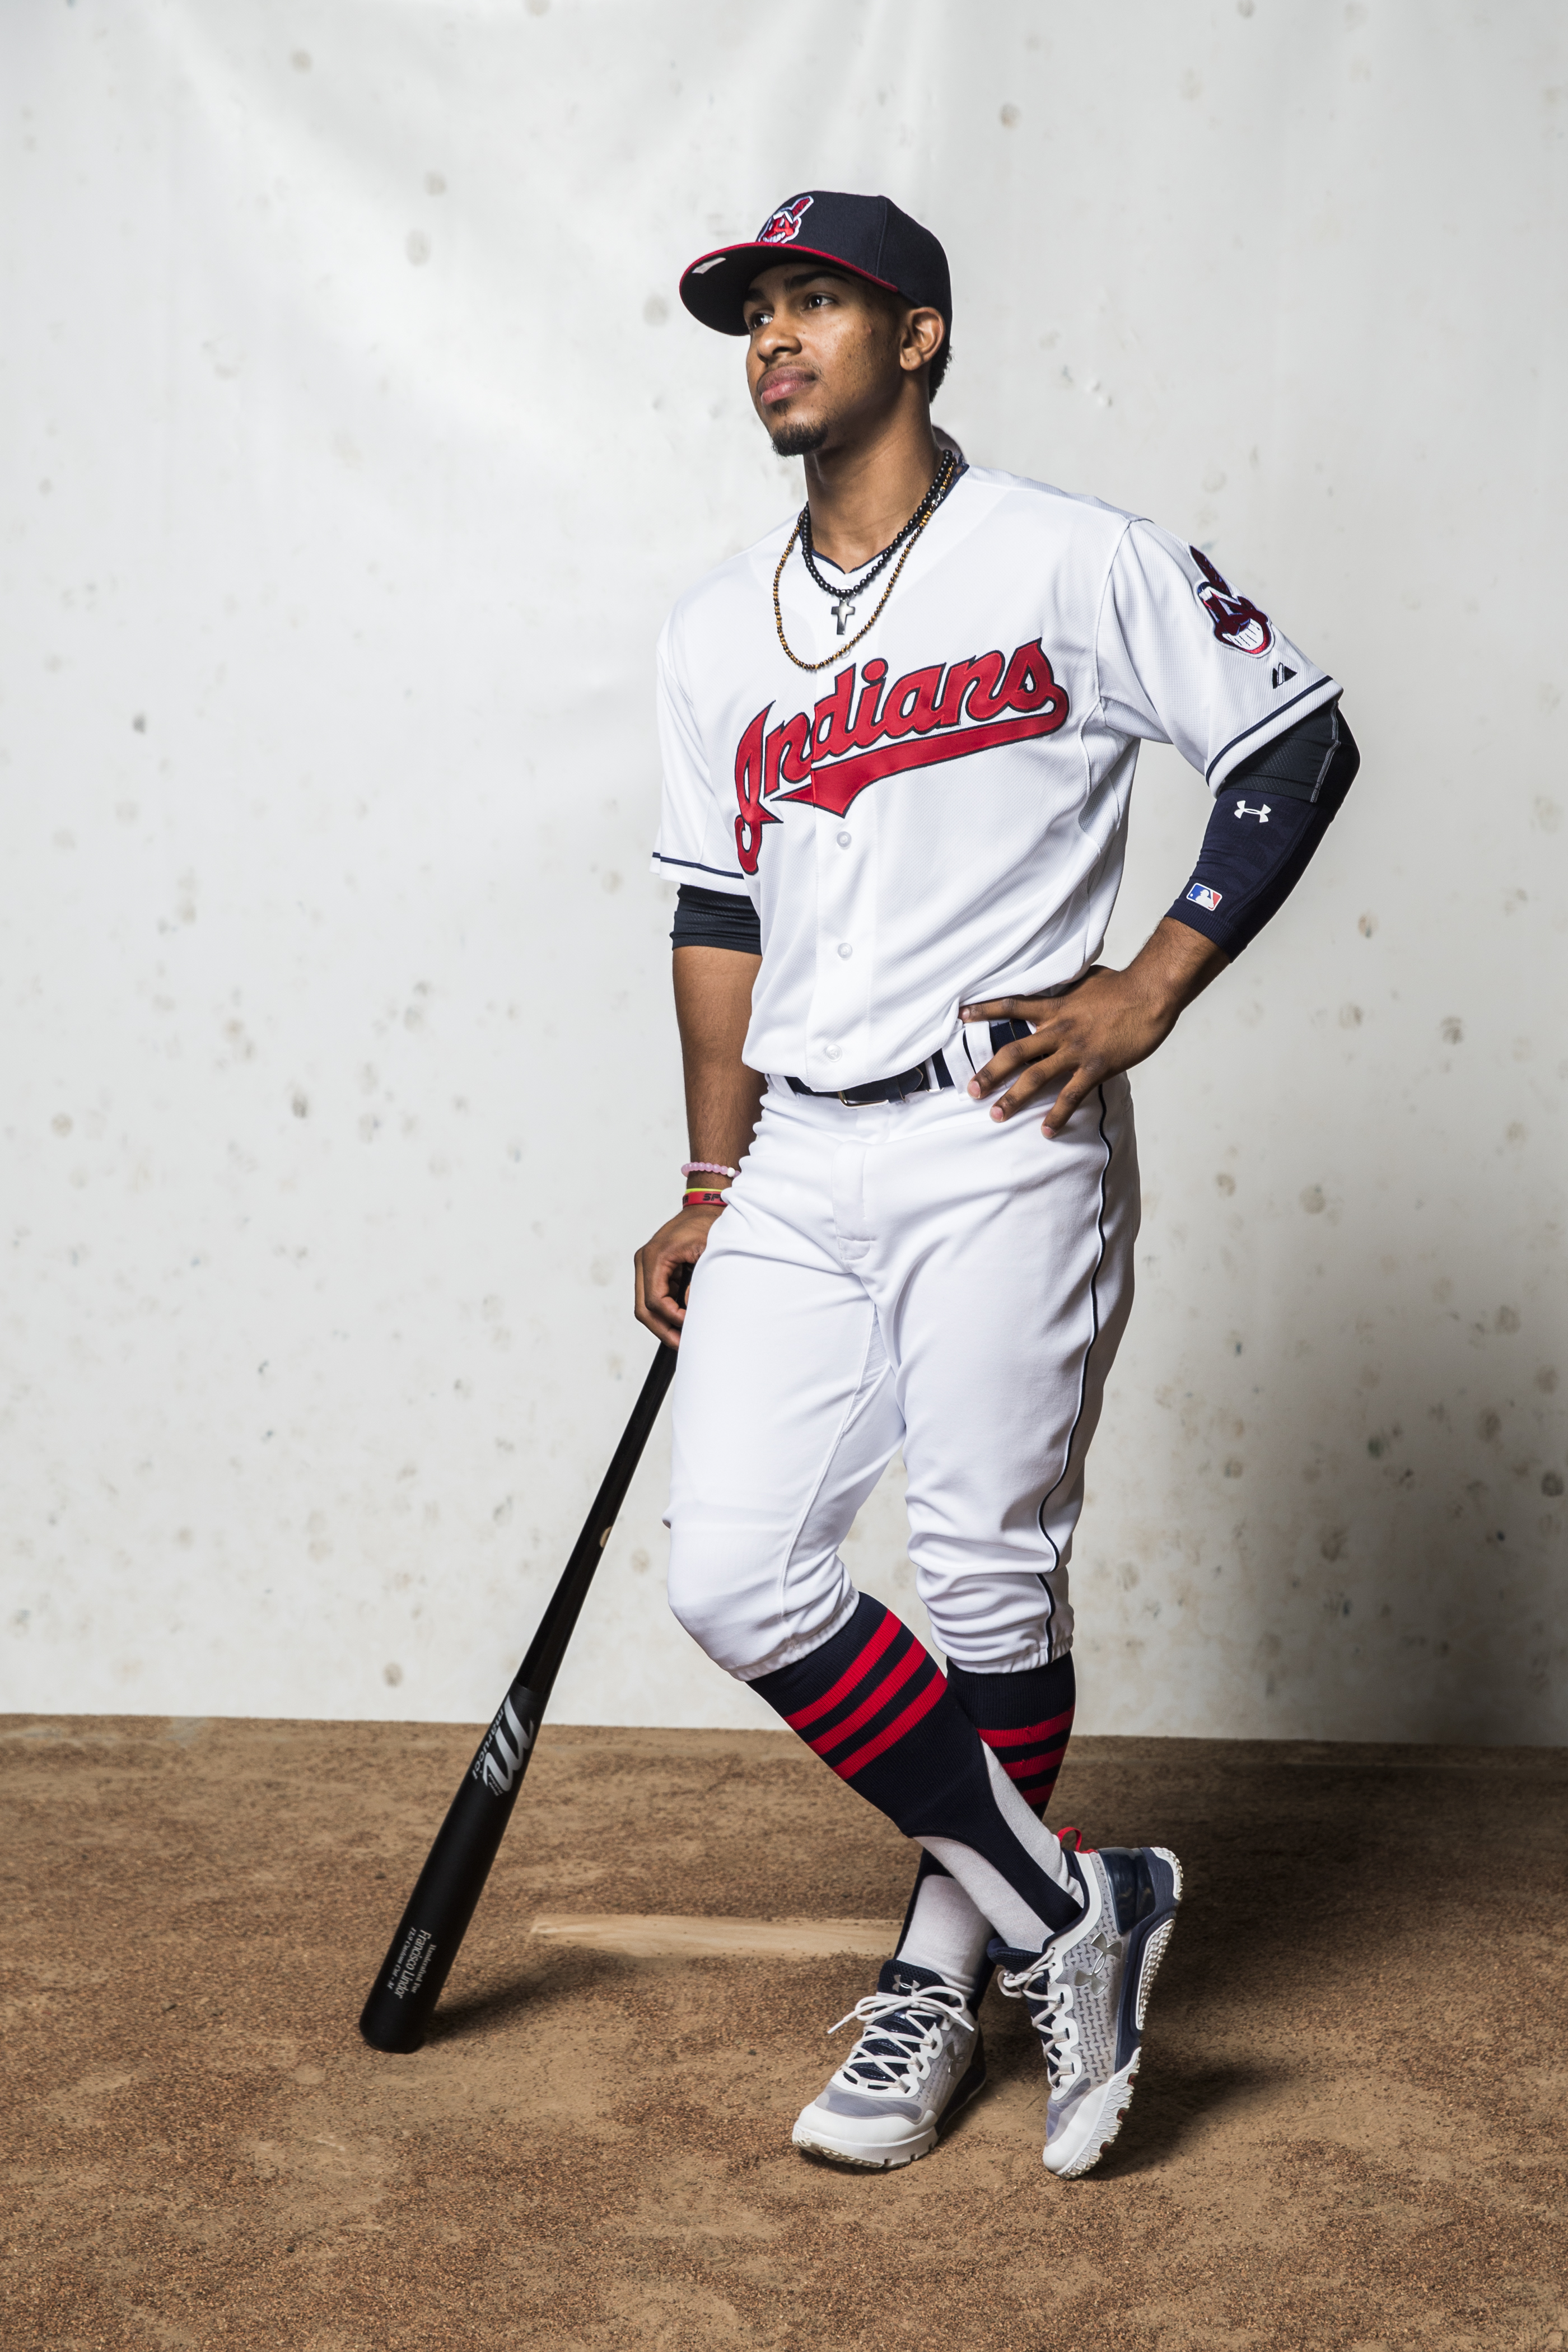 Eat your heart out, Carlos Correa. This is my 2015 AL Rookie of the Year!